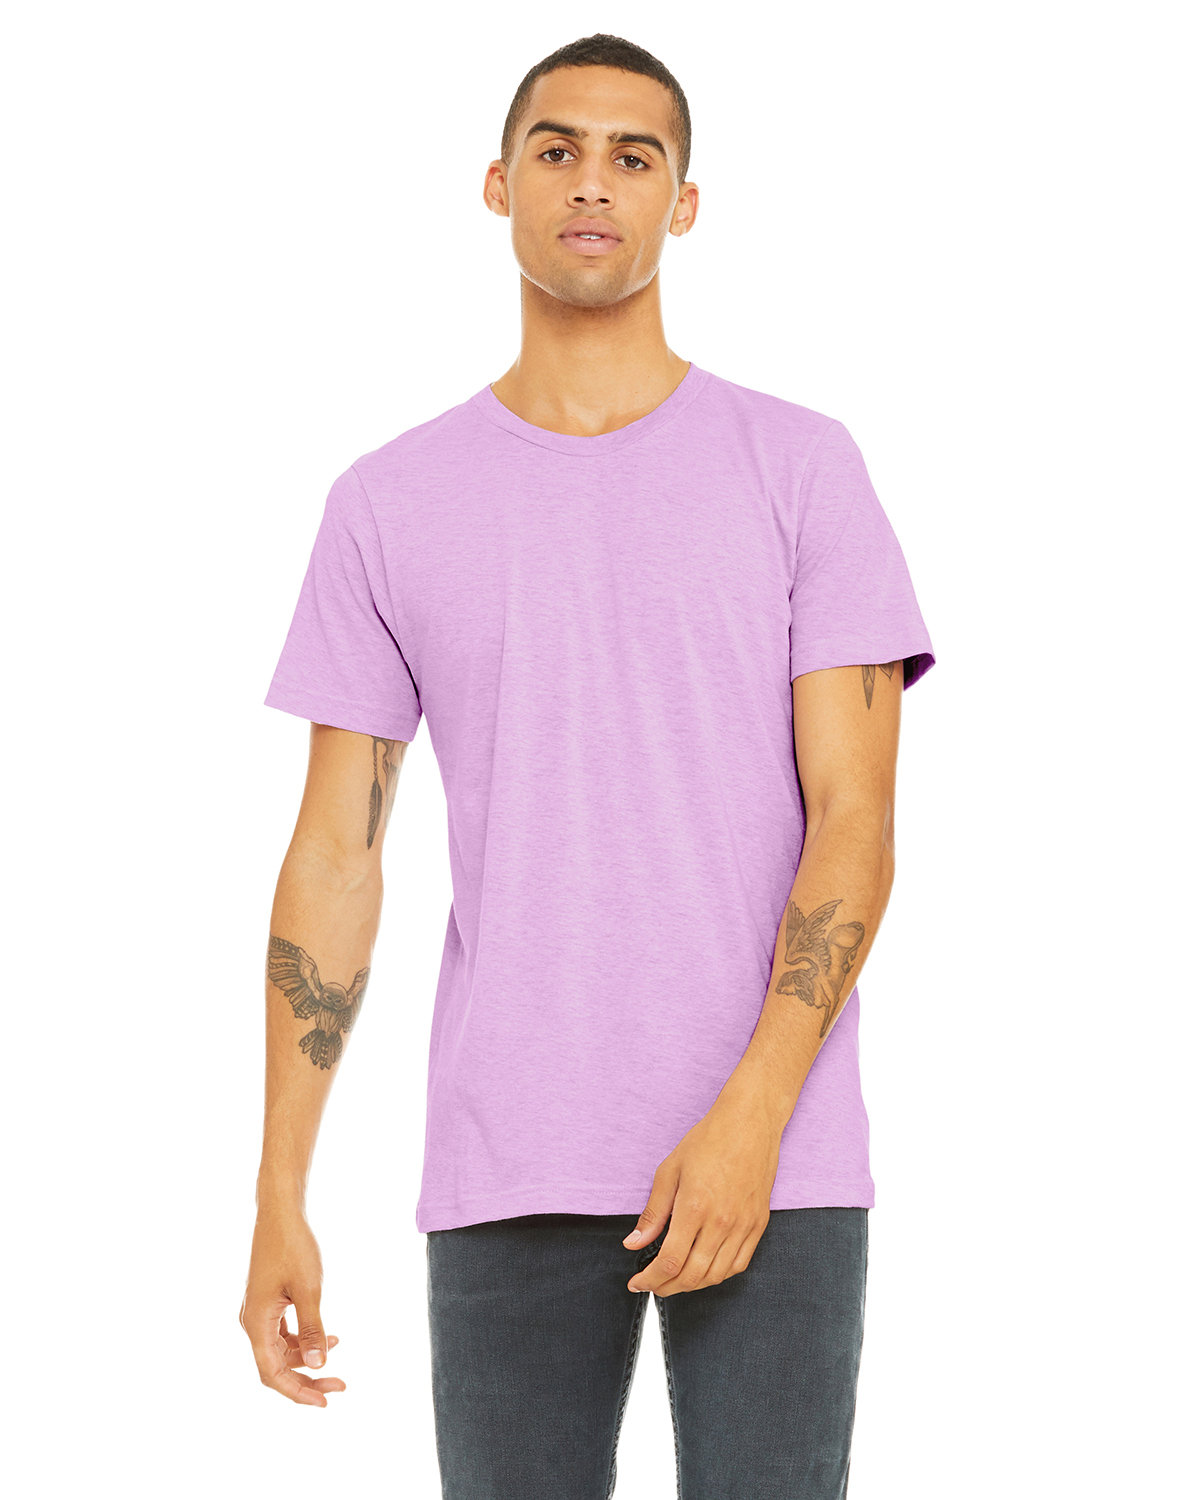 Bella + Canvas Unisex Heather CVC T-Shirt HTHR PRISM LILAC